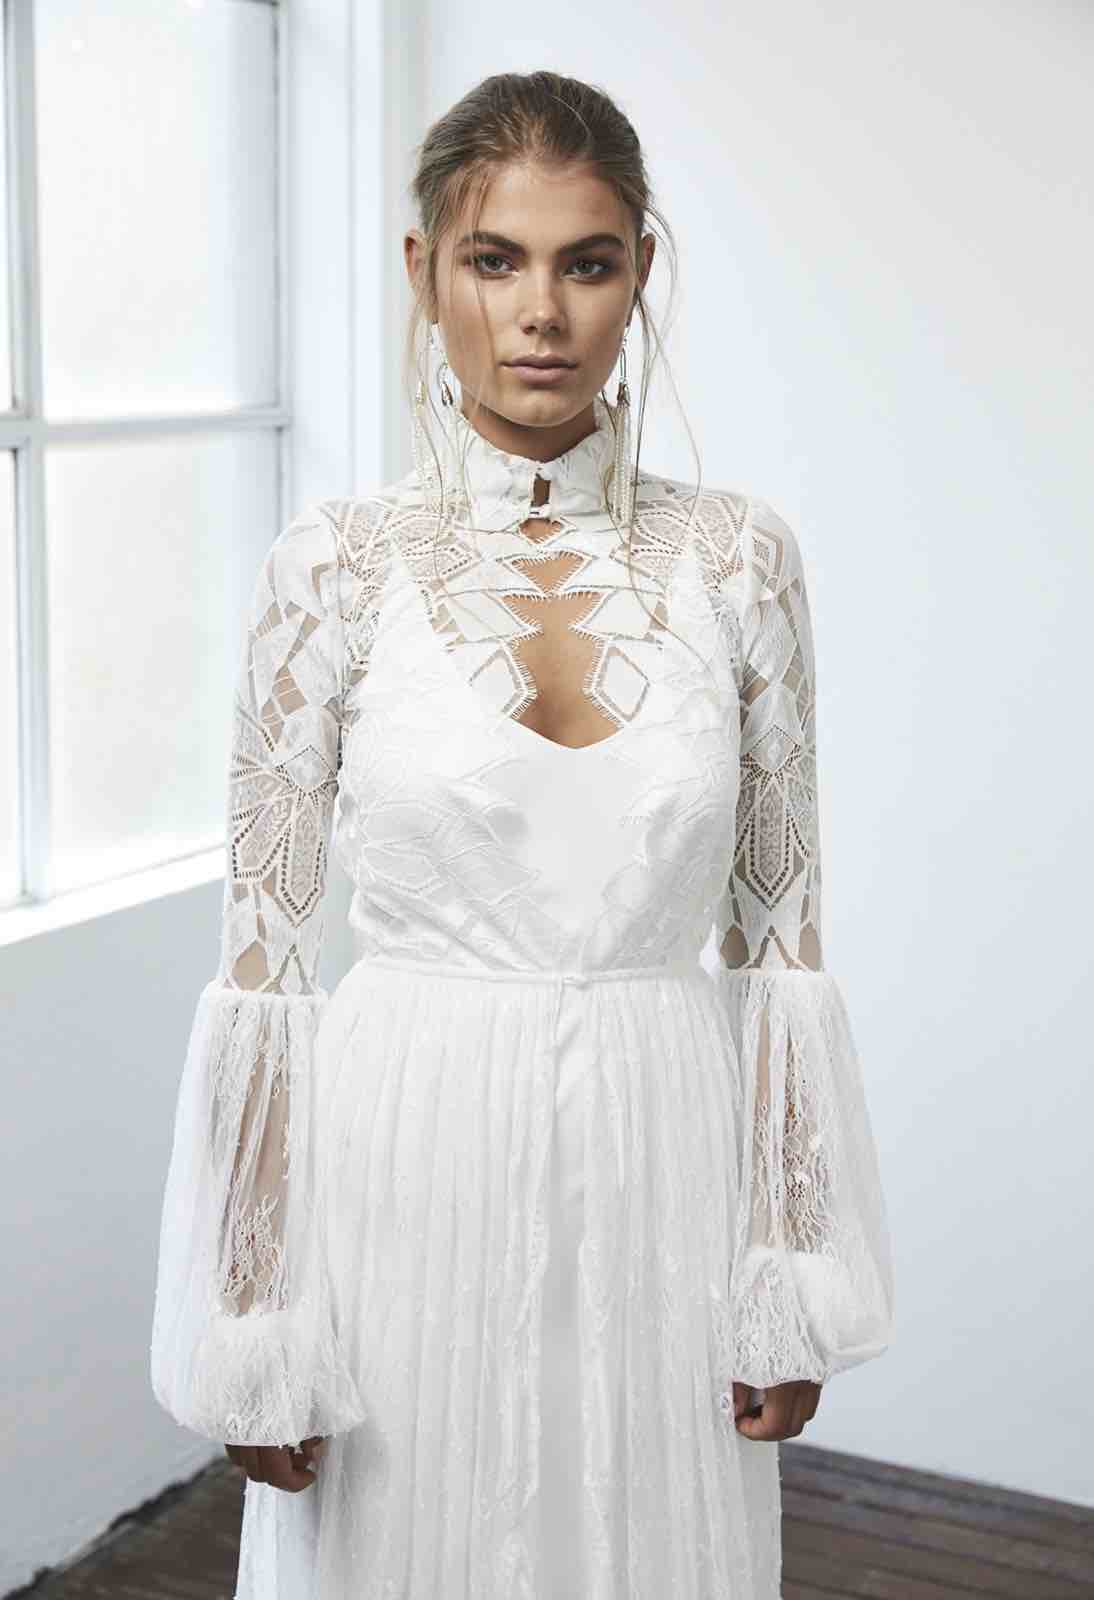 Jac+Robe+-+Blanc+Collection+from+Grace+Loves+Lace.jpg